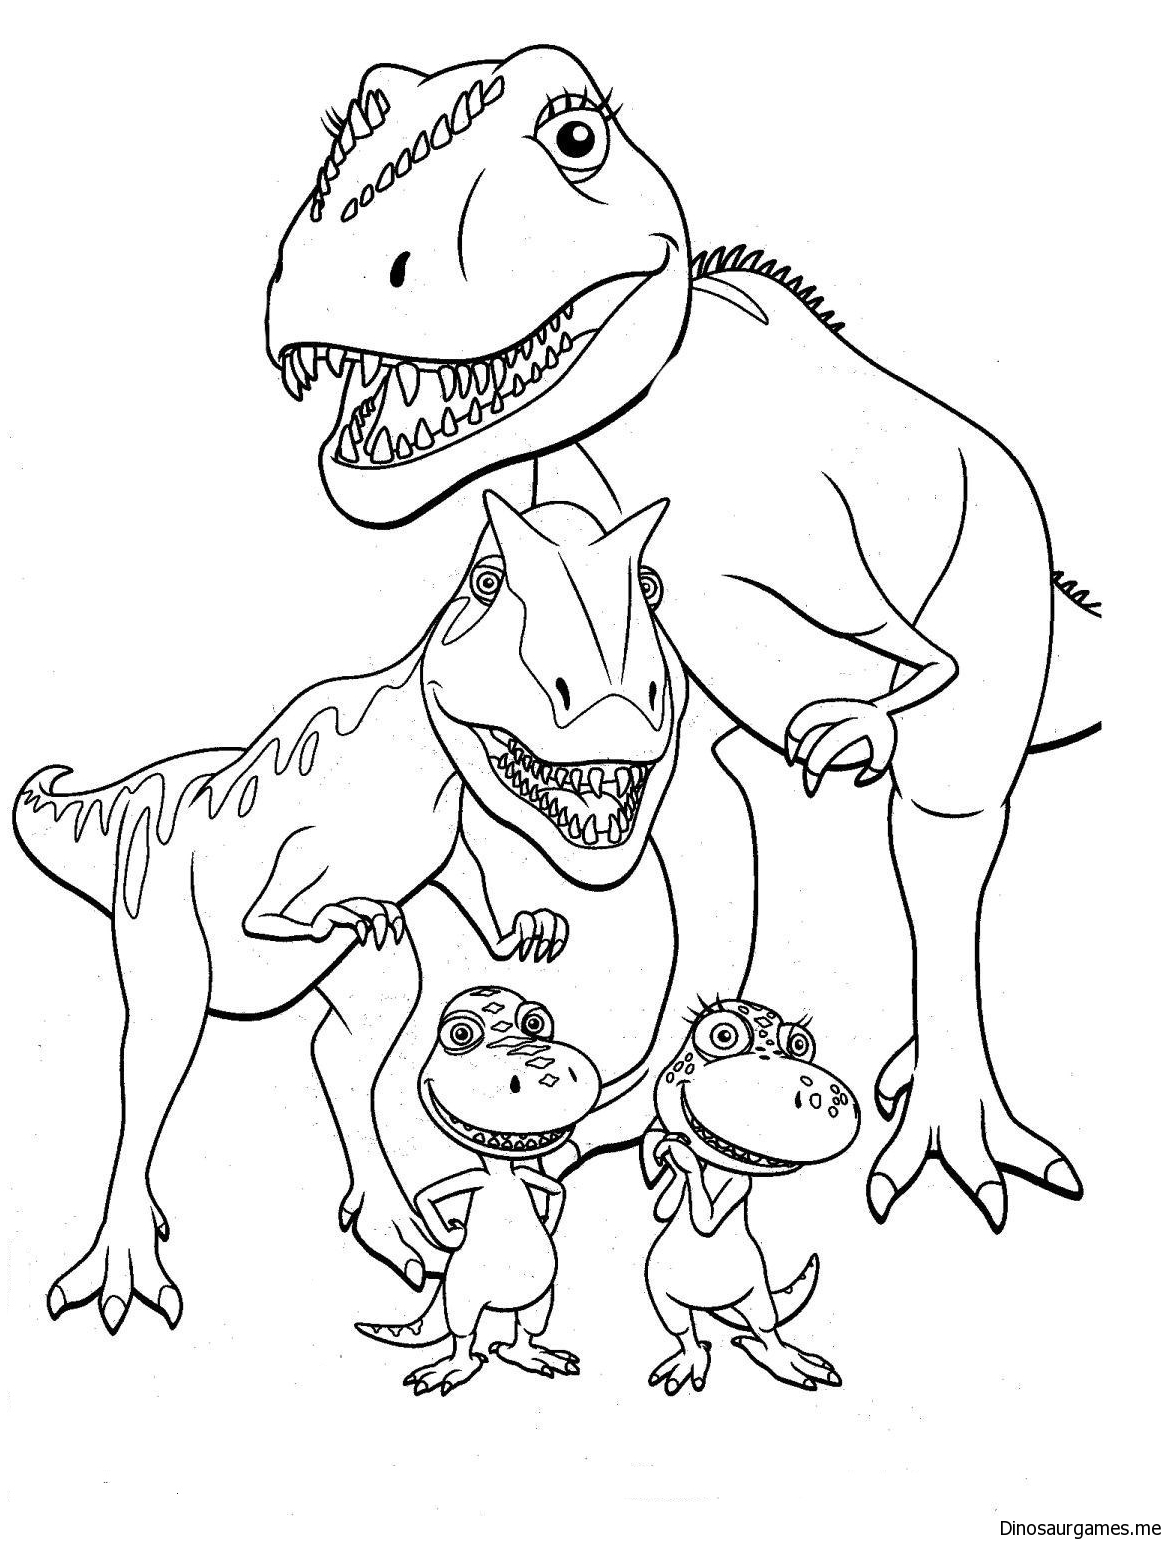 Dinosaur Train 5 Coloring Page